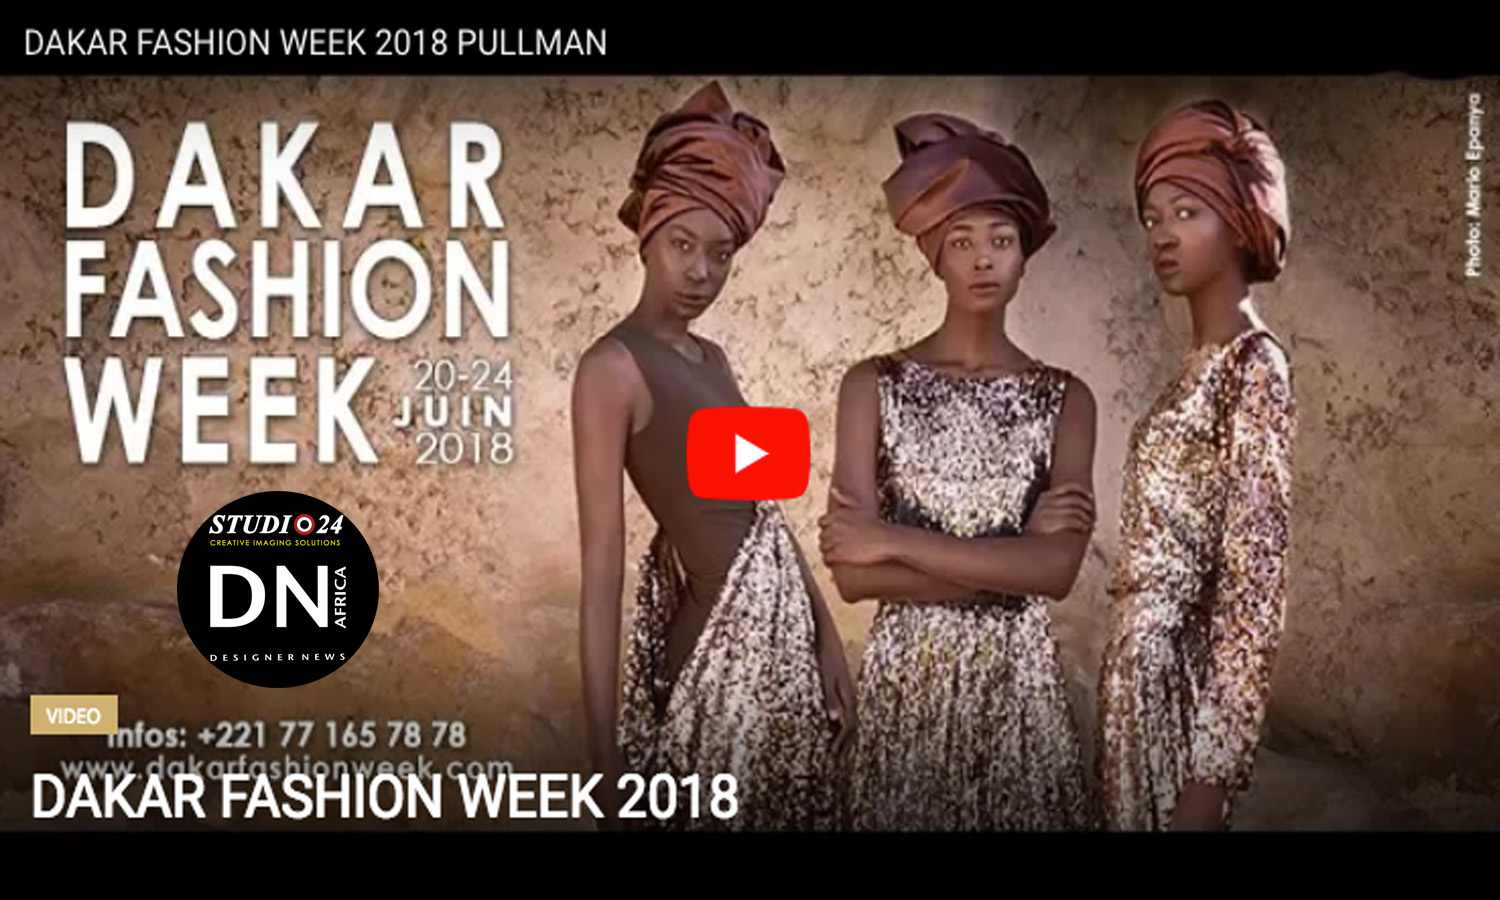 AFRICAN FASHION STYLE MAGAZINE -DAKAR-FASHION-WEEK-2018-Video - Fashion Africa - FA TV - ADAMA PARIS - Media Partner DN MAG, DN AFRICA -STUDIO 24 NIGERIA - STUDIO 24 INTERNATIONAL